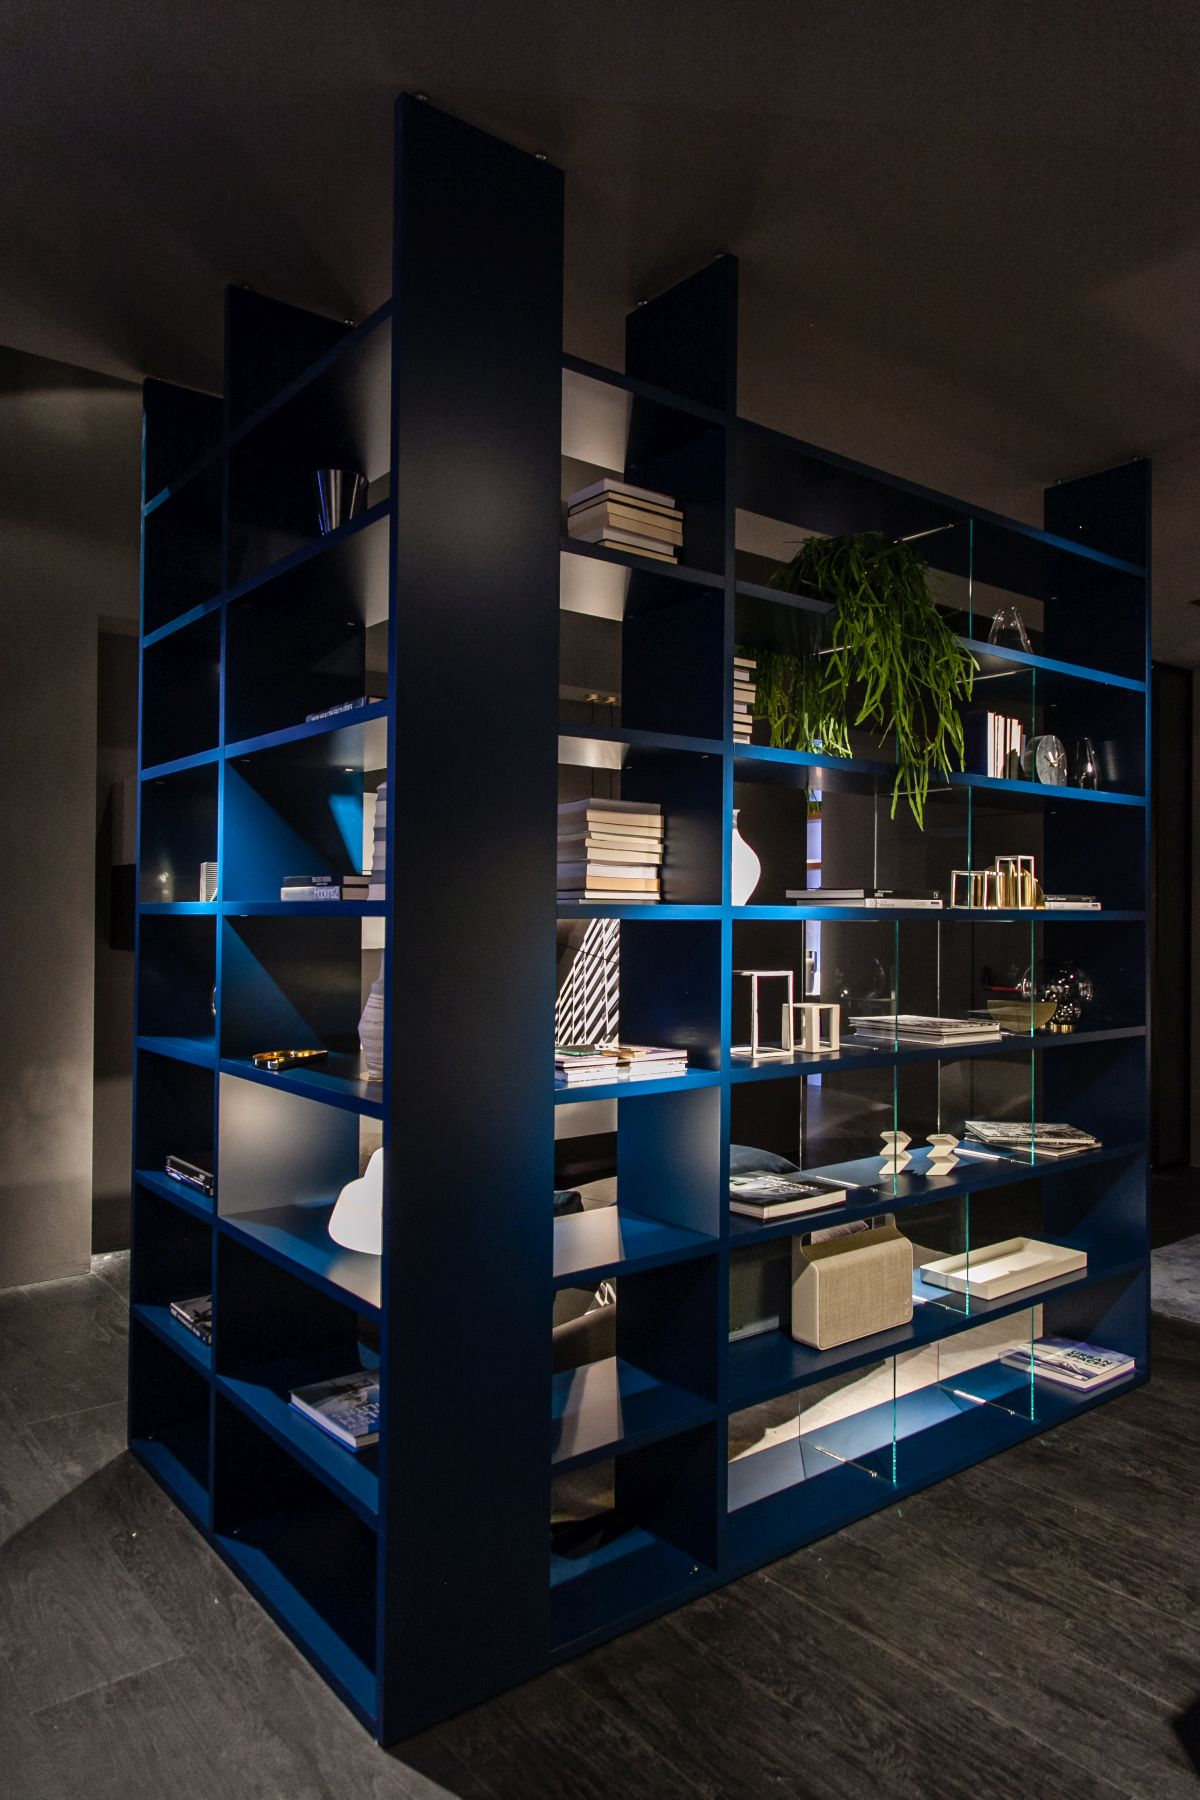 Shelving units can also double as space dividers and that's a pretty cool option for small spaces